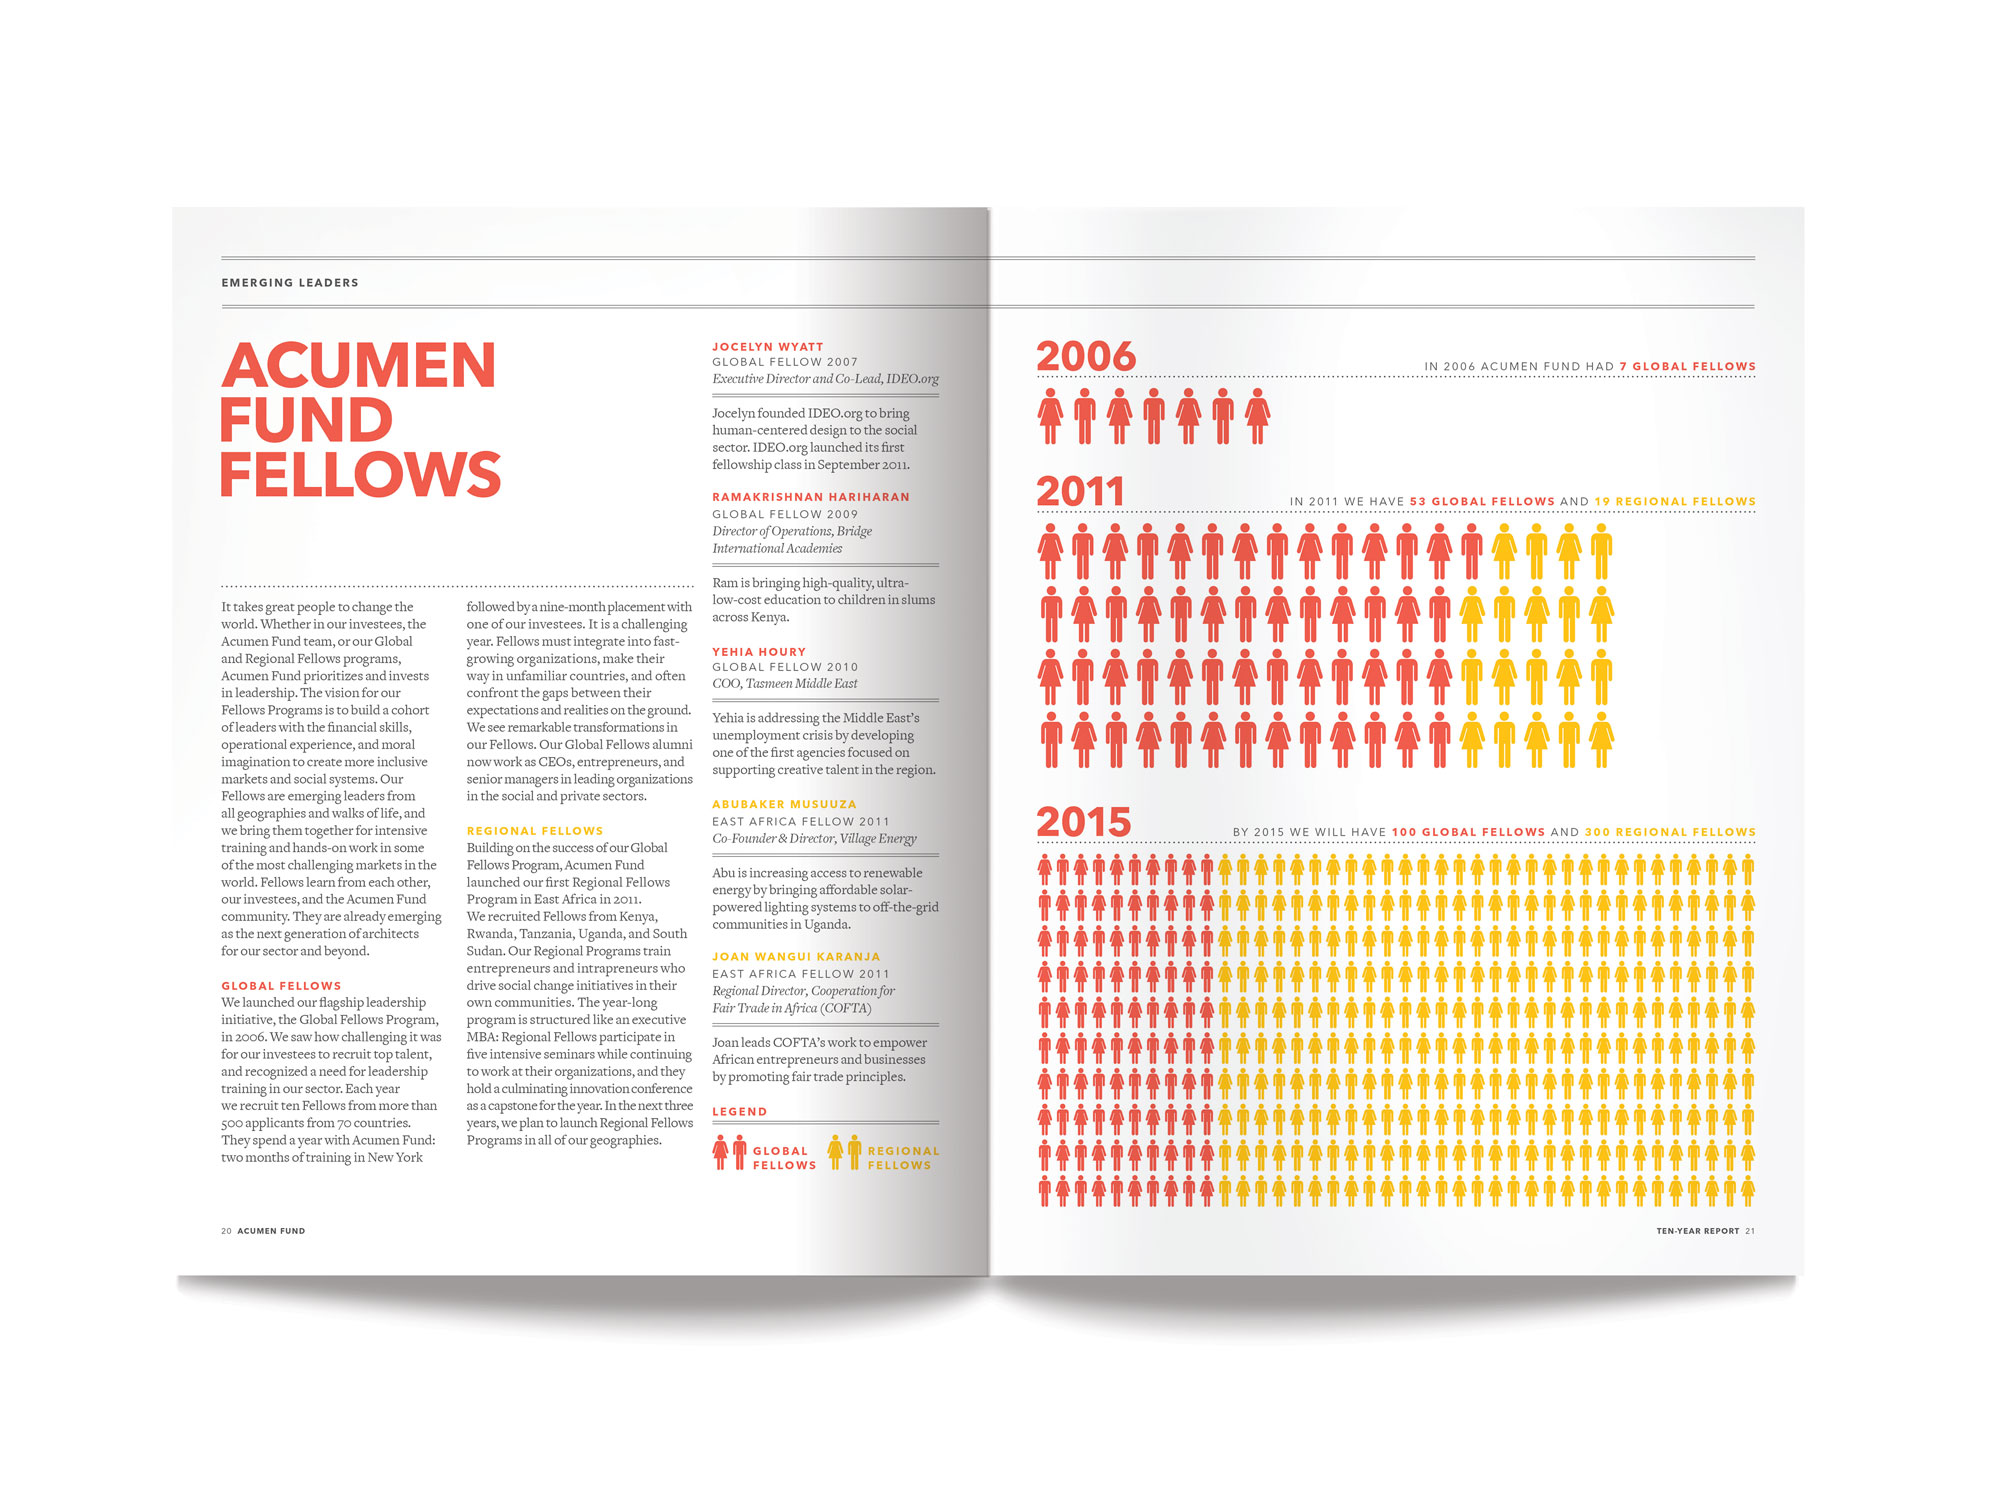 Acumen Fund annual report view 2